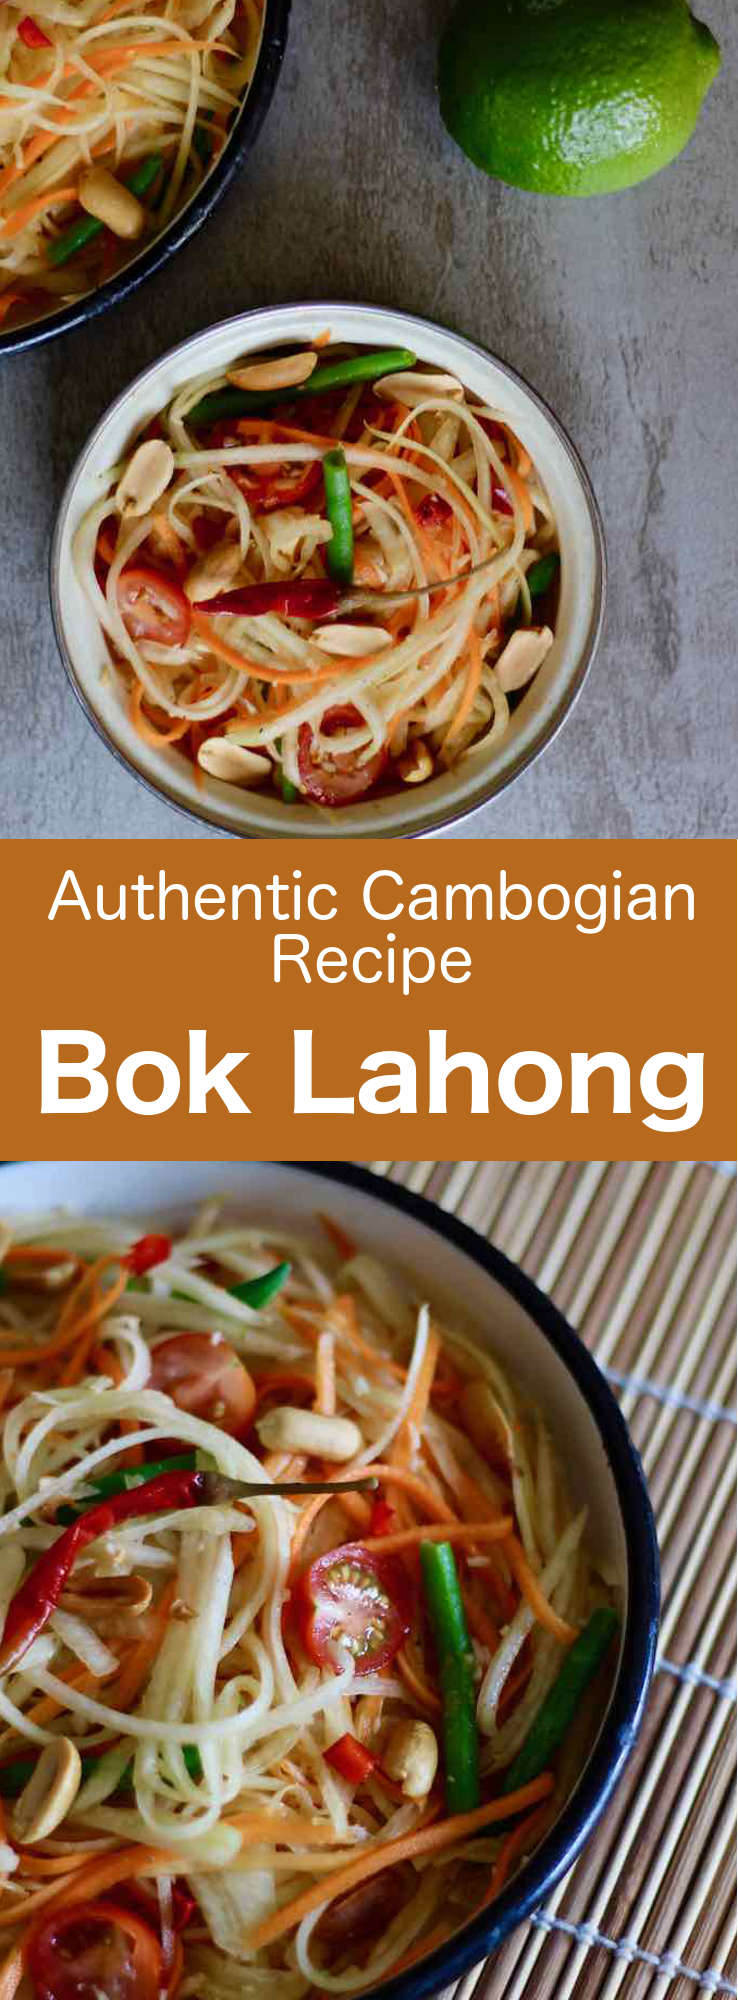 Bok lahong is the Cambodian version of green papaya salad, that is also prepared with crab, tomatoes, yardlong beans and peanuts. #Cambodian #CambodianRecipe #CambodianCuisine #AsianCuisine #AsianRecipe #WorldCuisine #196flavors